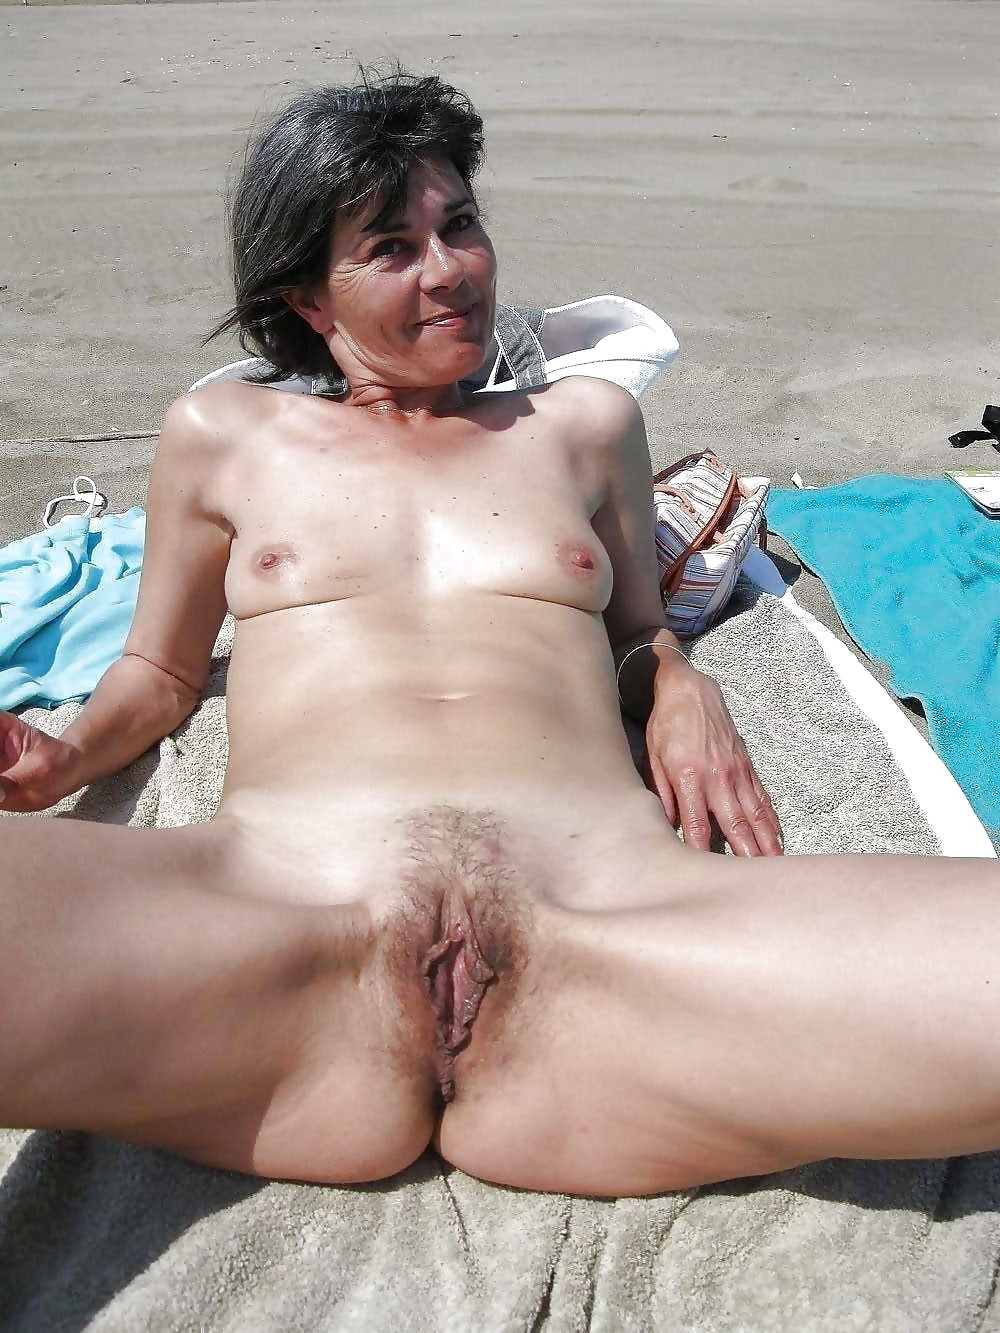 Naked old girls nude beach pics - TheMatureSluts.com